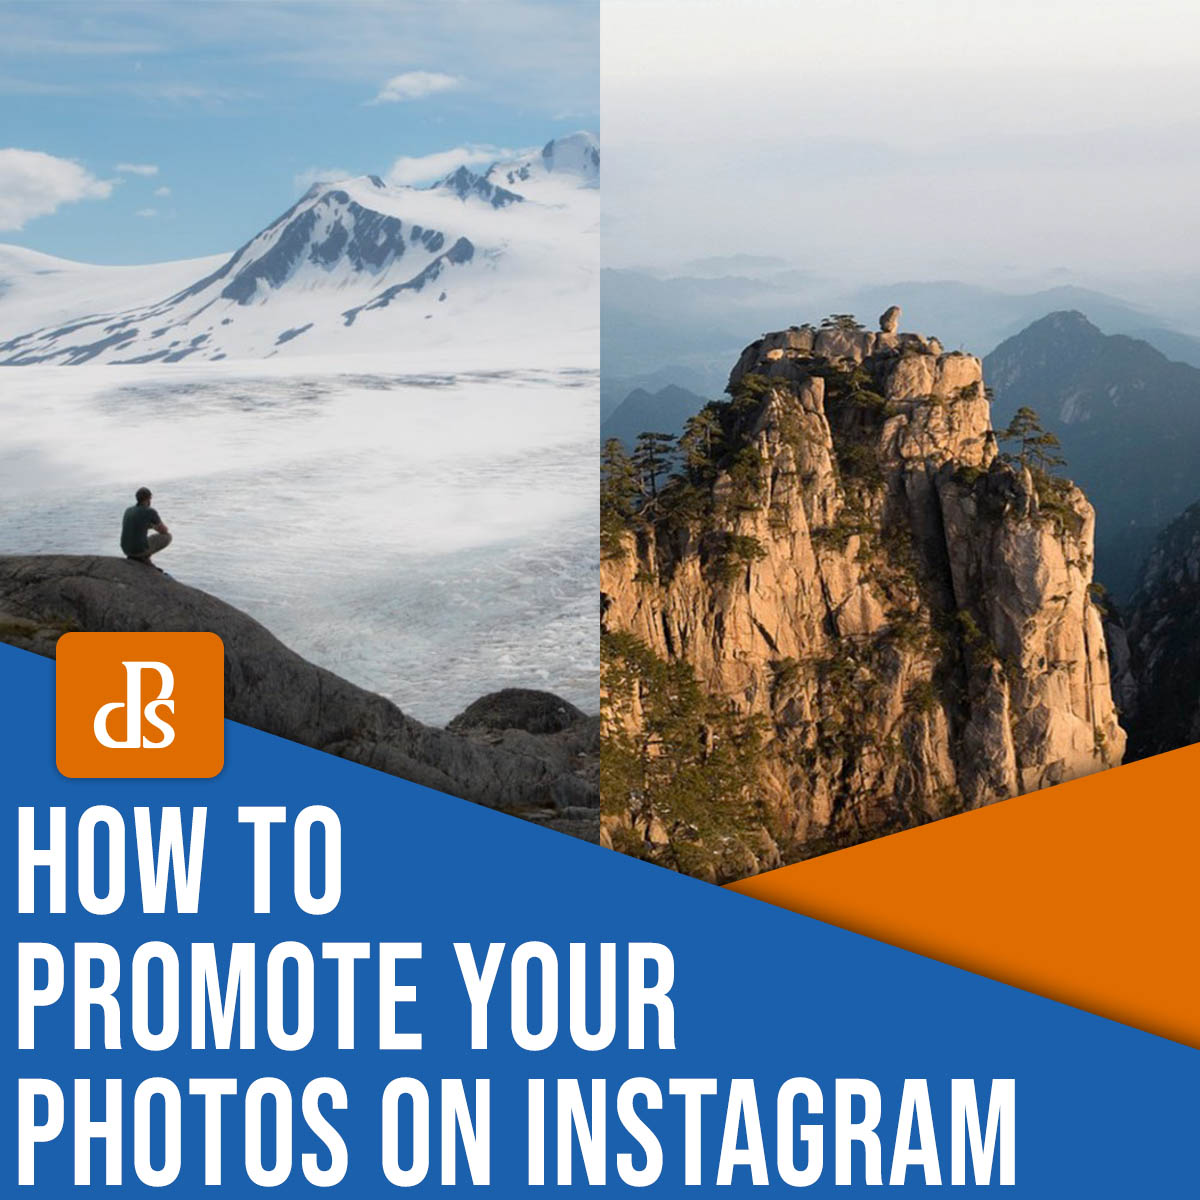 promote your photography on Instagram